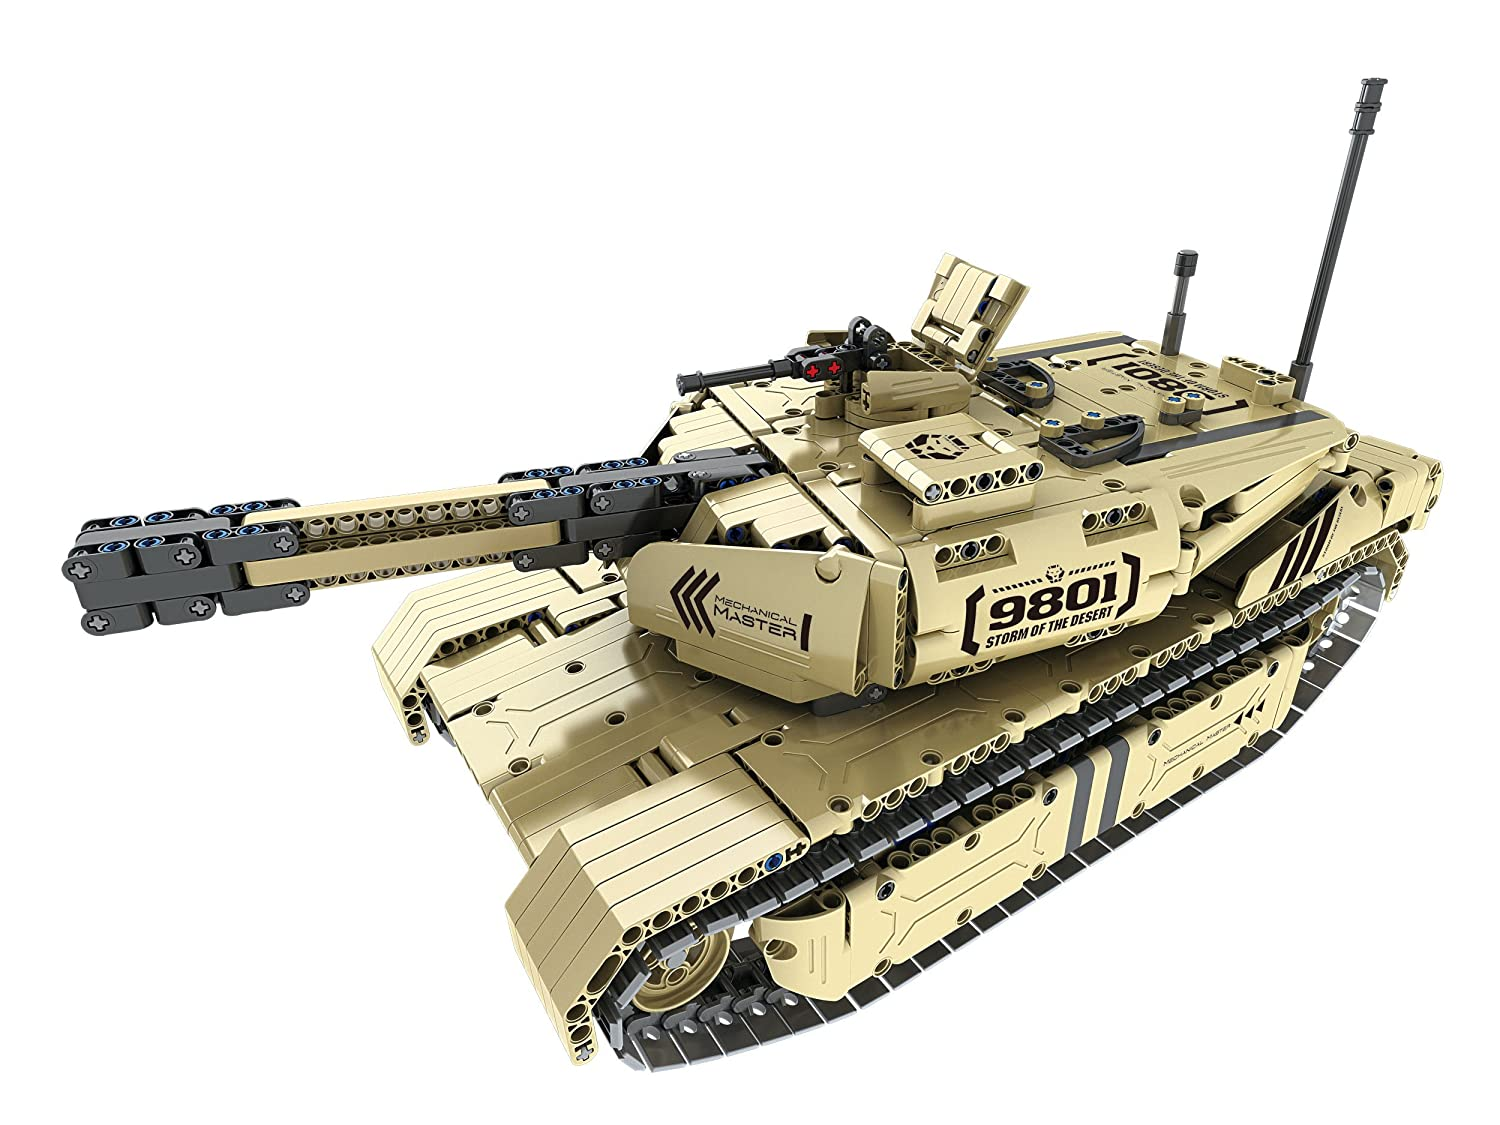 Top 9 Best Remote Control Tanks Battle Reviews in 2020 8